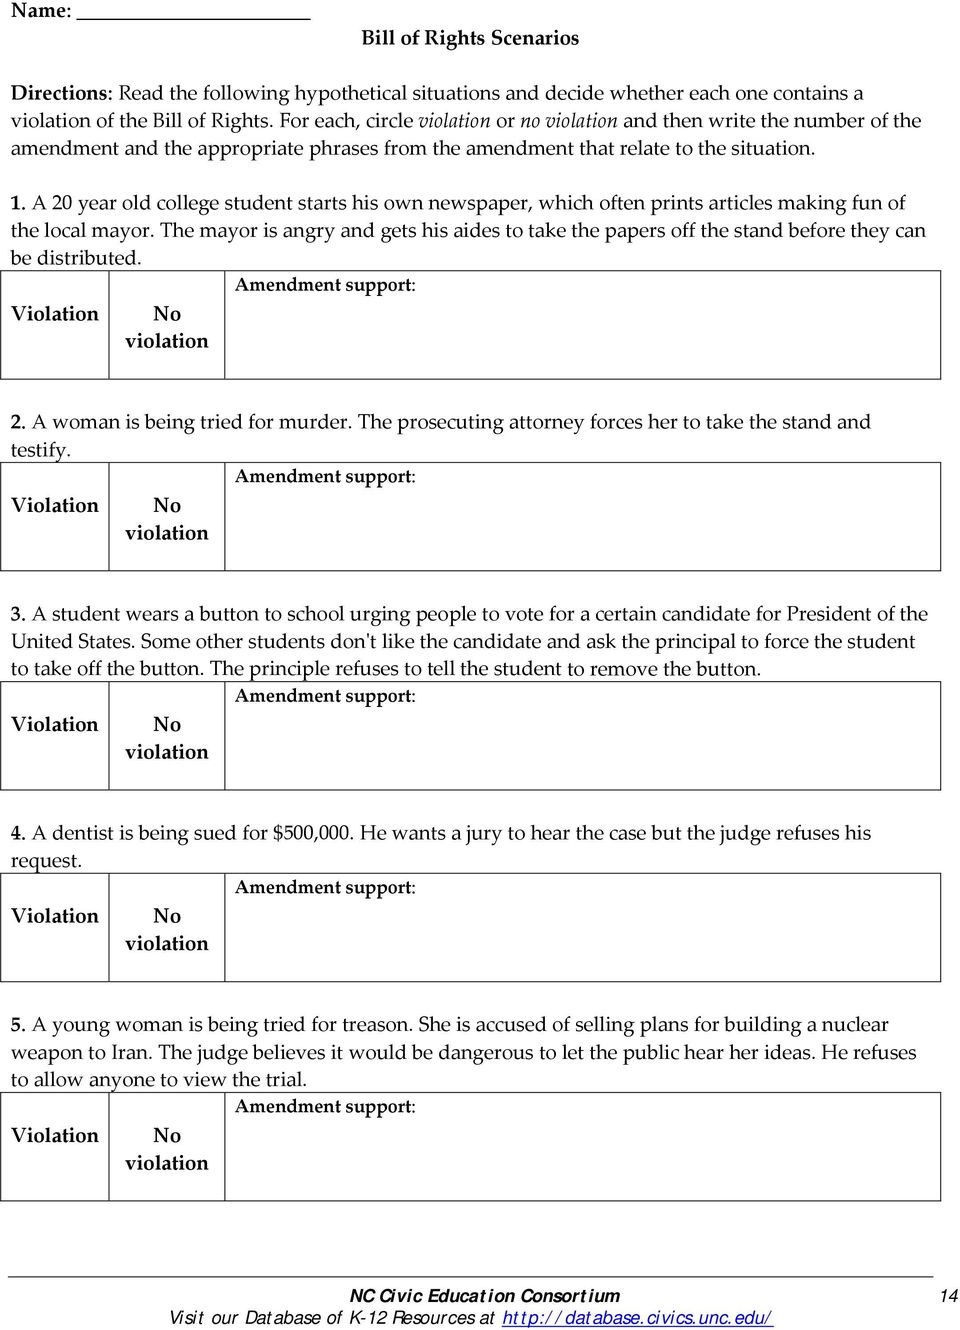 Bill Of Rights Worksheet Grade 8 Nc Civic Education Consortium 1 Visit Our Database